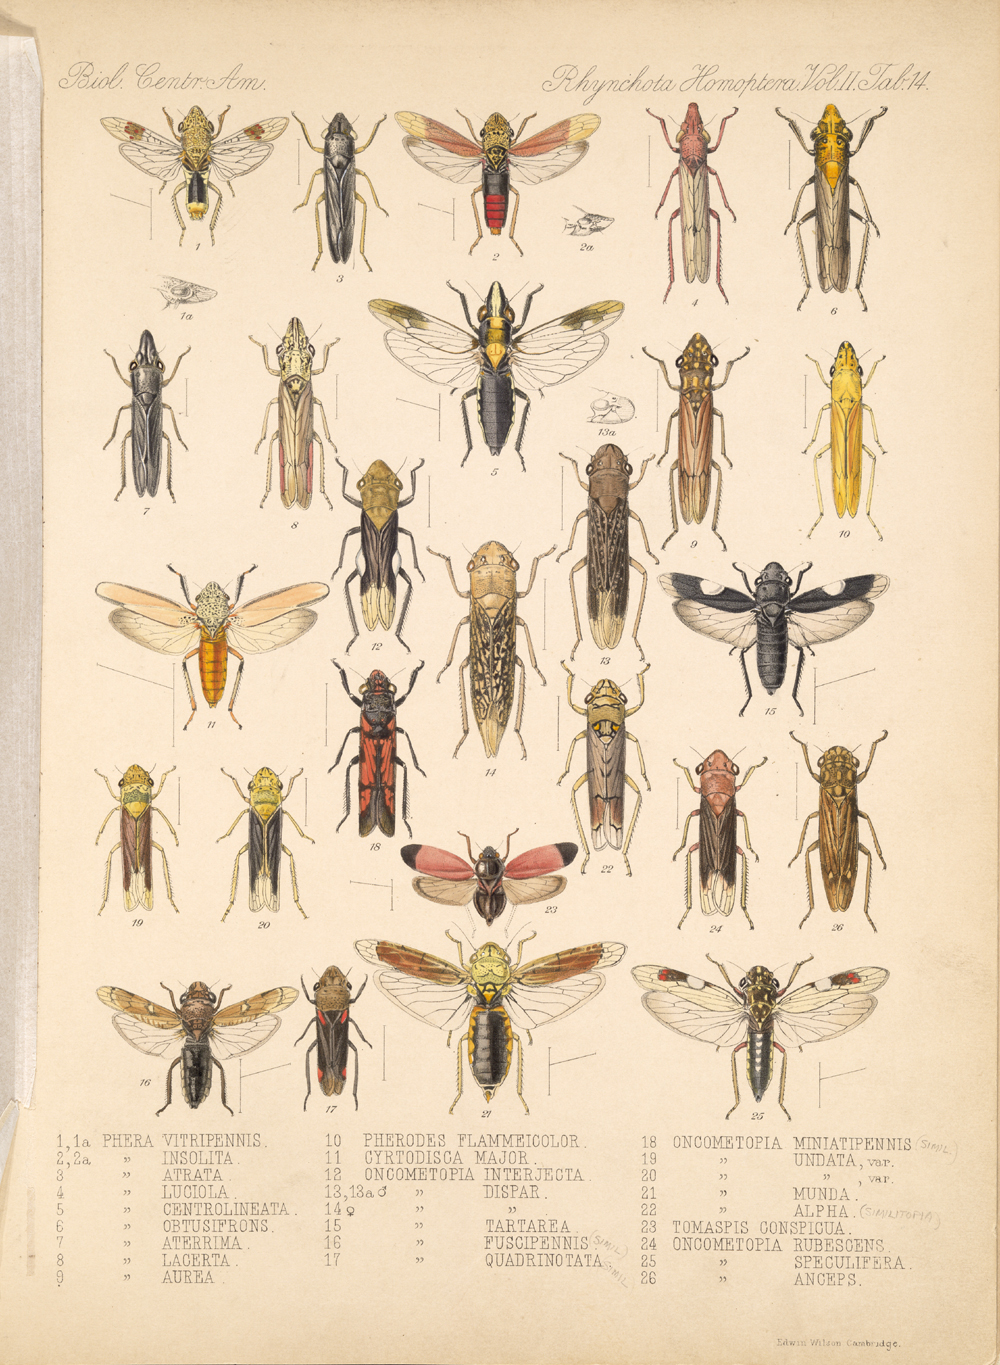 Other Insects,  Image number:bca_18_02_01_372